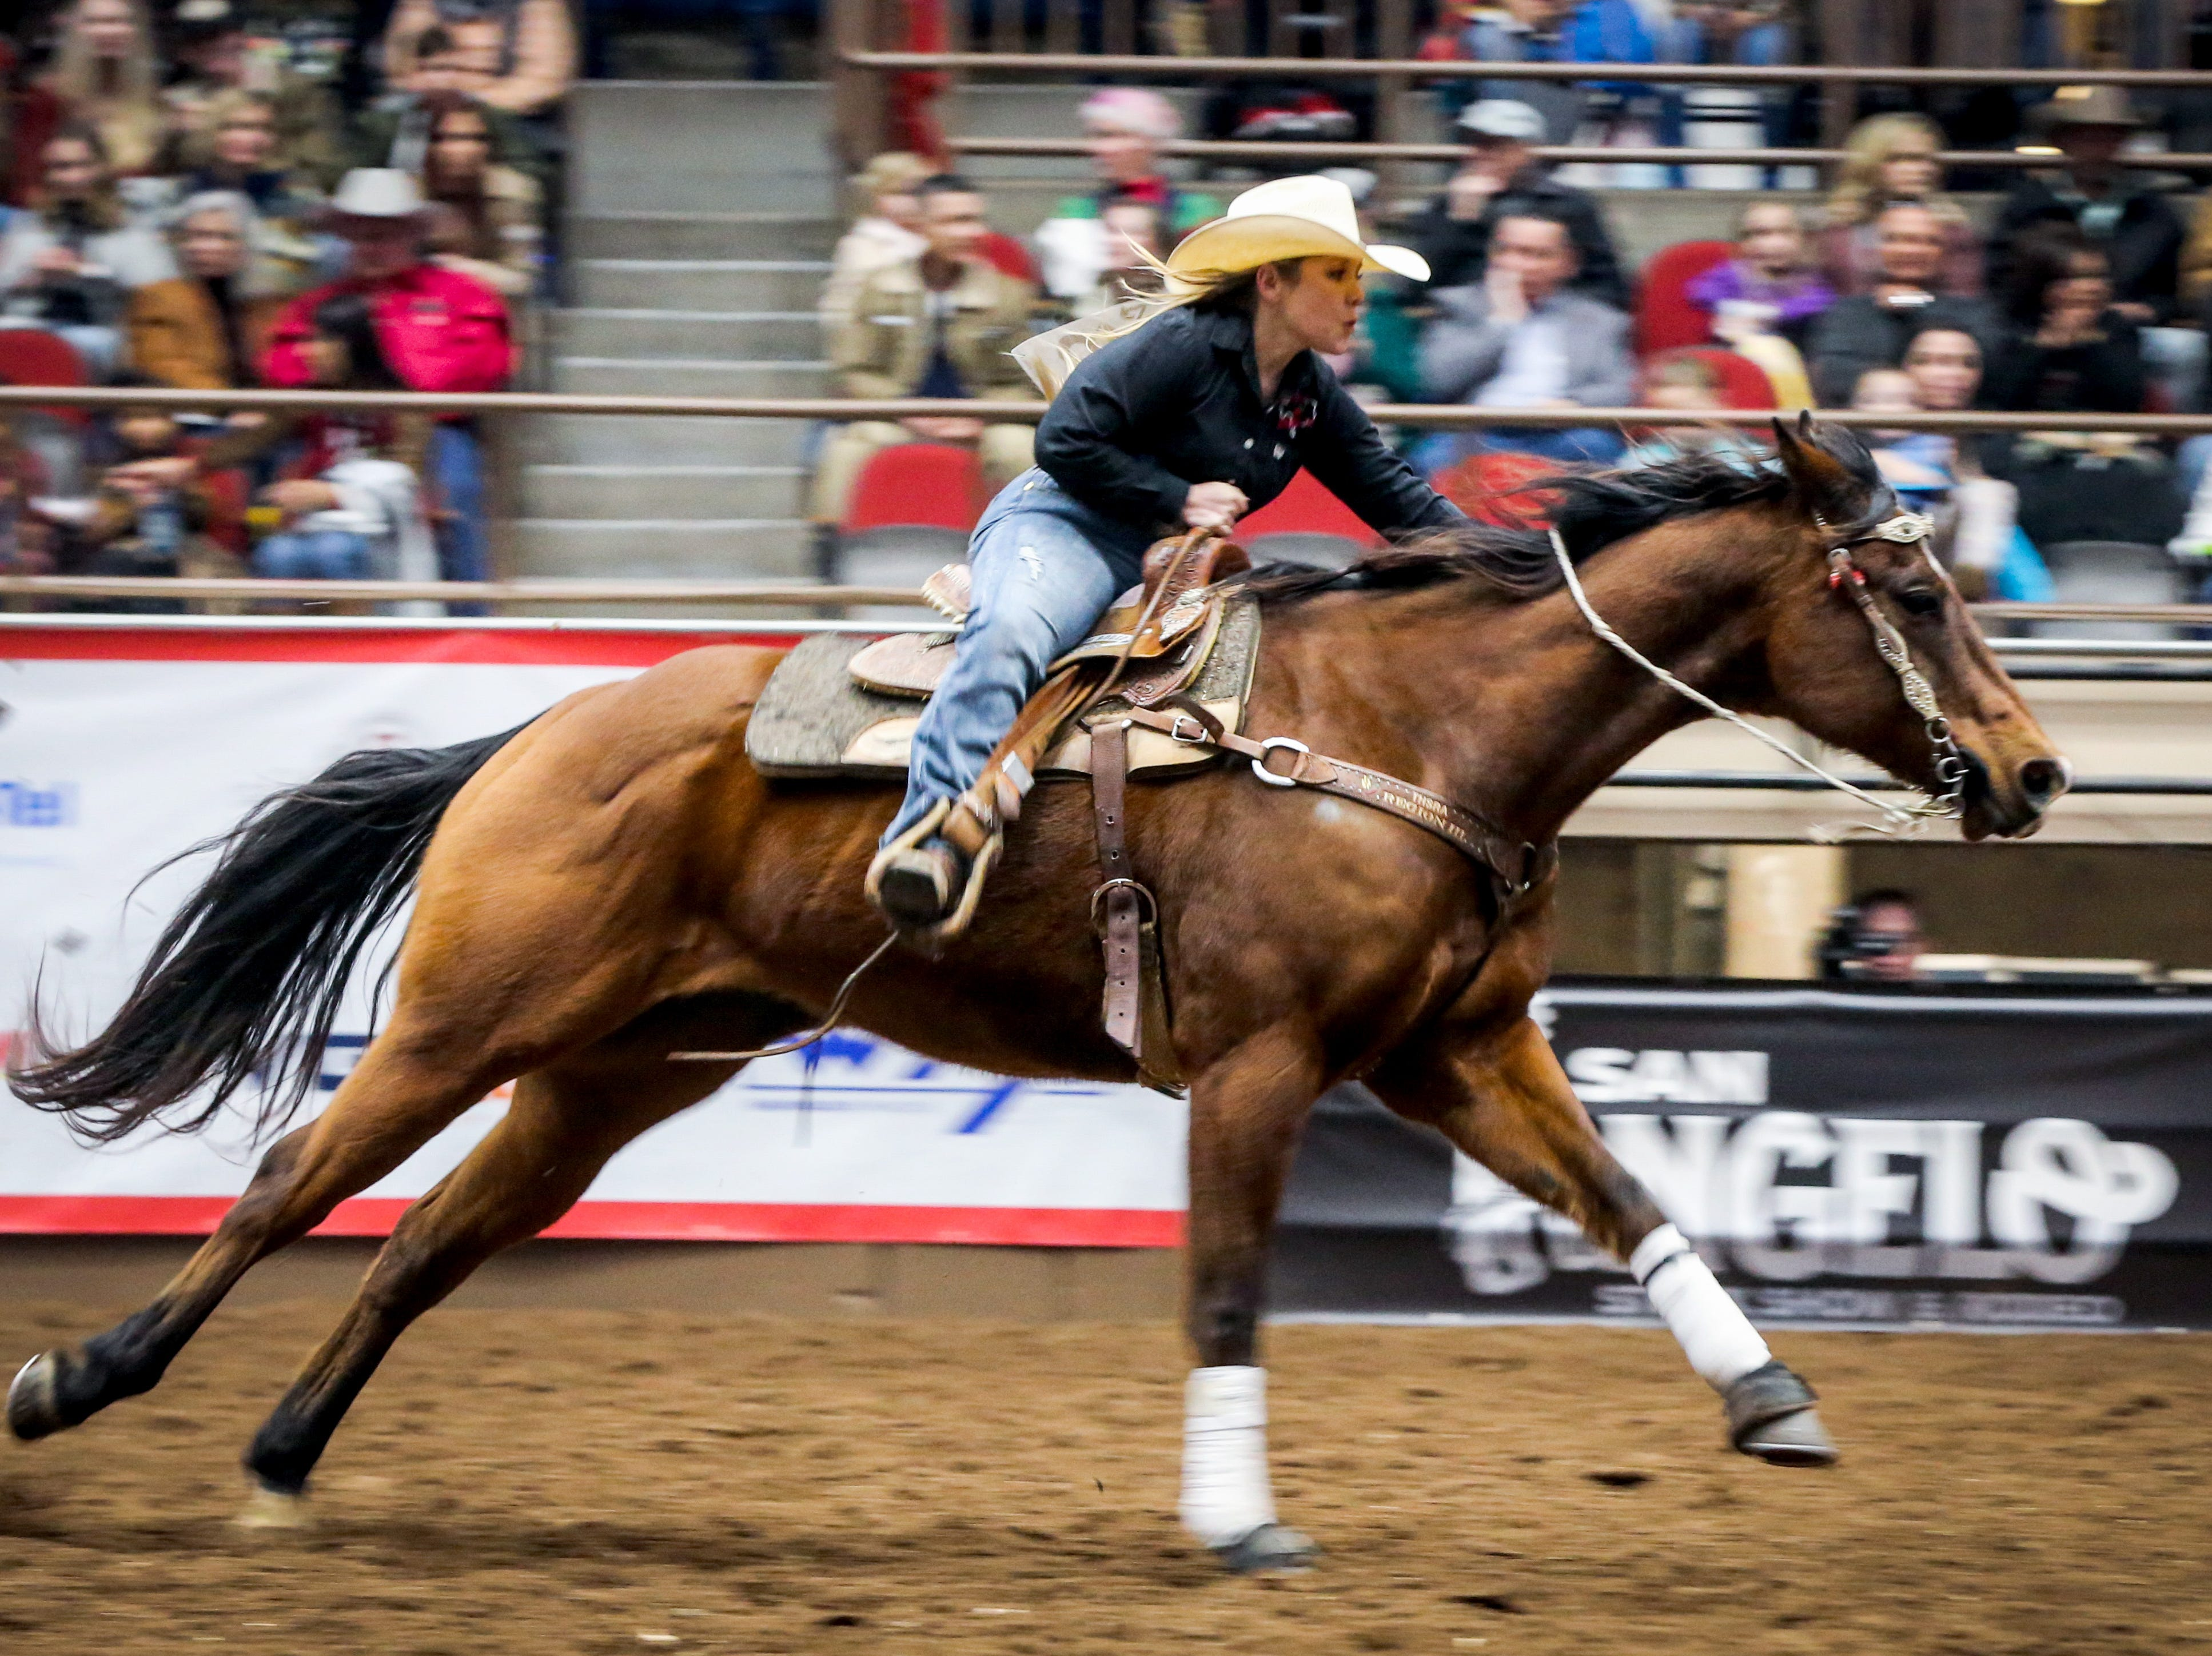 Shaylee Hindman races barrels during the San Angelo Stock Show & Rodeo matinee show Saturday, Feb. 9, 2019, at Foster Communications Coliseum.